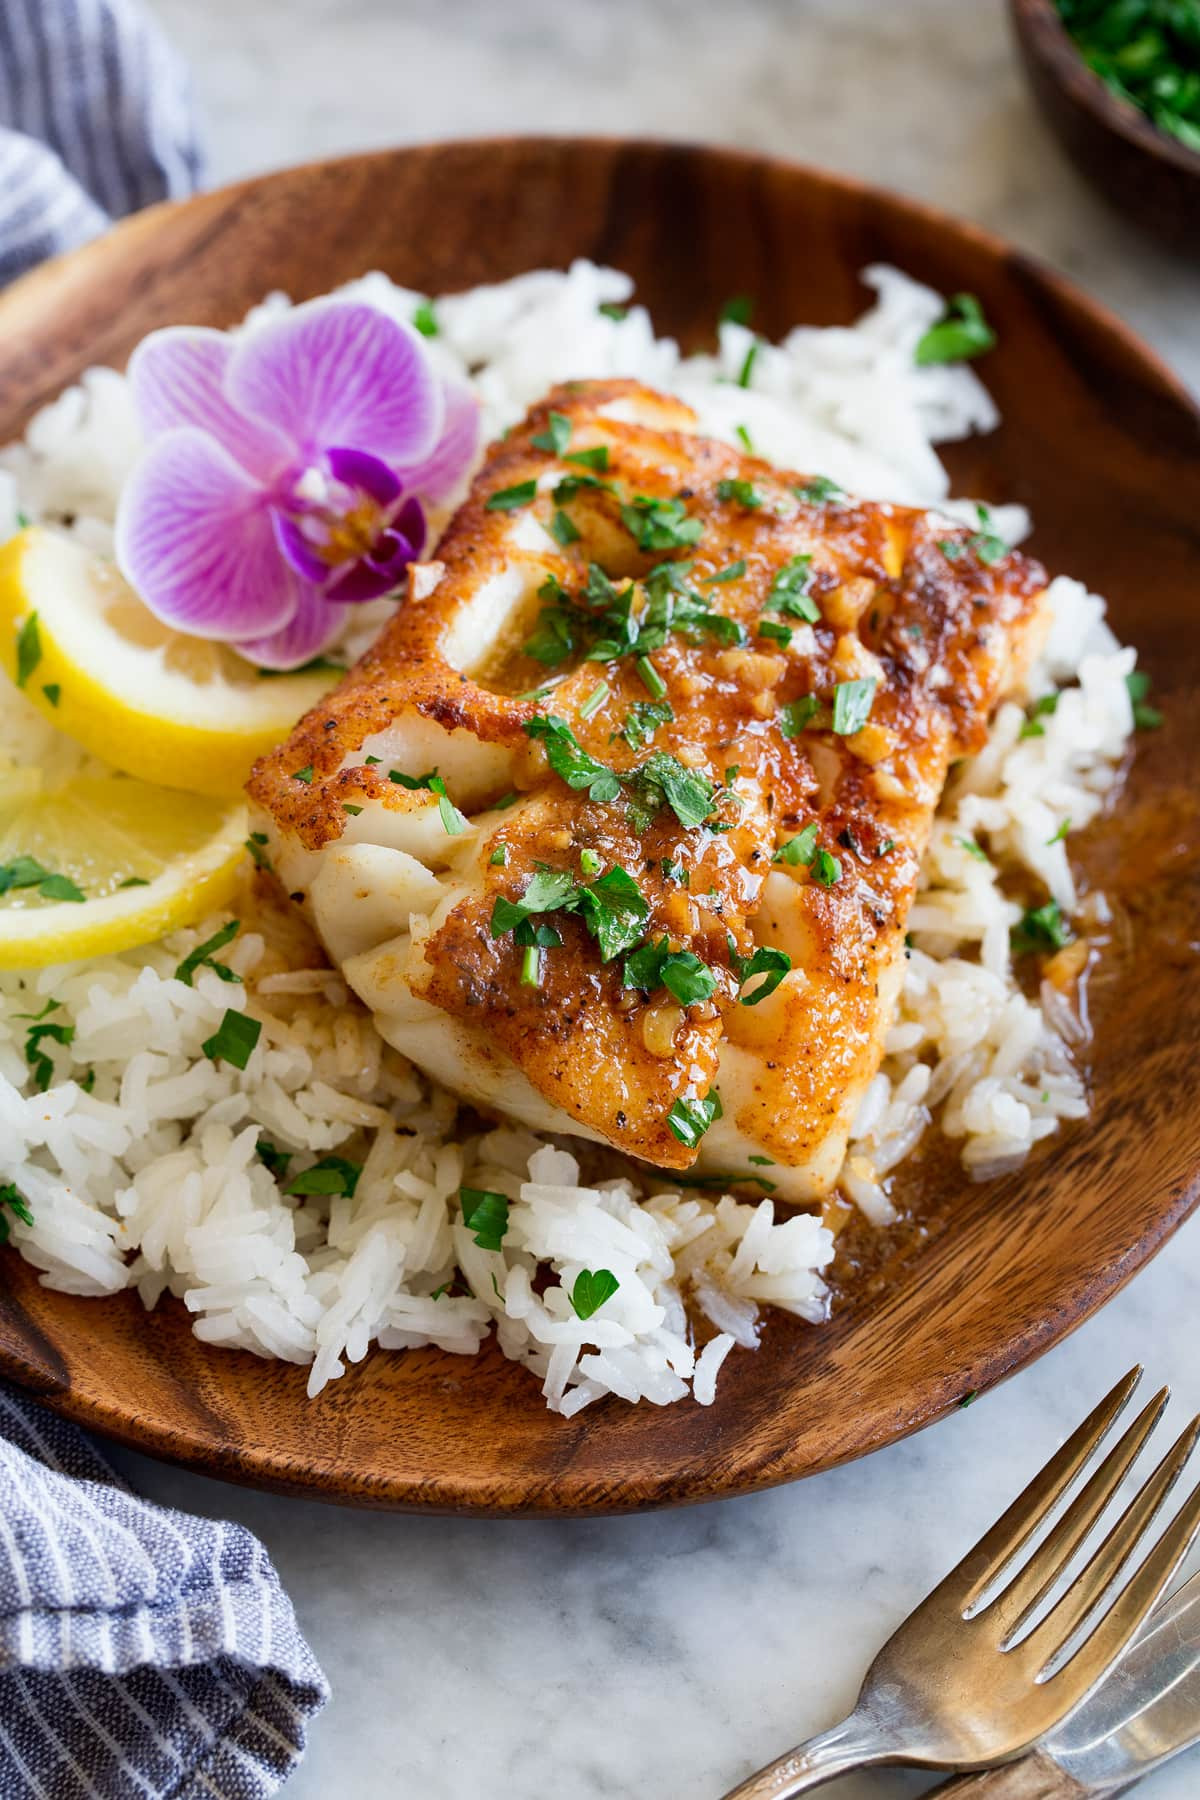 Photo: Pan seared cod fillet topped with a spice rub, lemon butter sauce and parsley. It is served over white rice with a purple flour and lemon slices to the side.